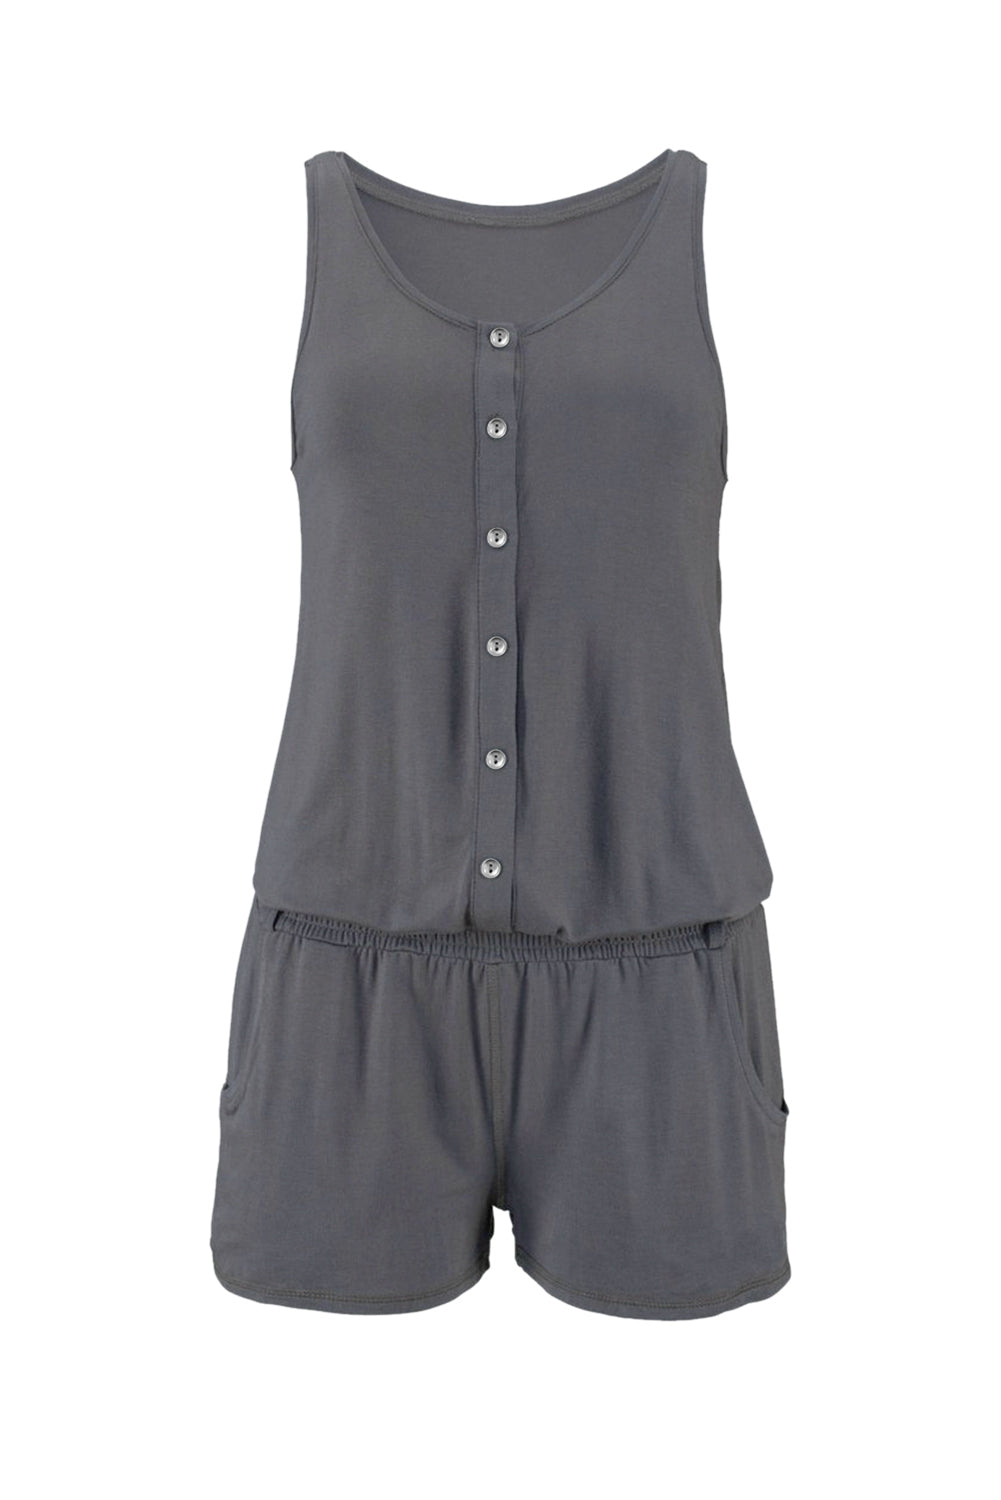 Solid Color Sleeveless Button Jumpsuit in Gray